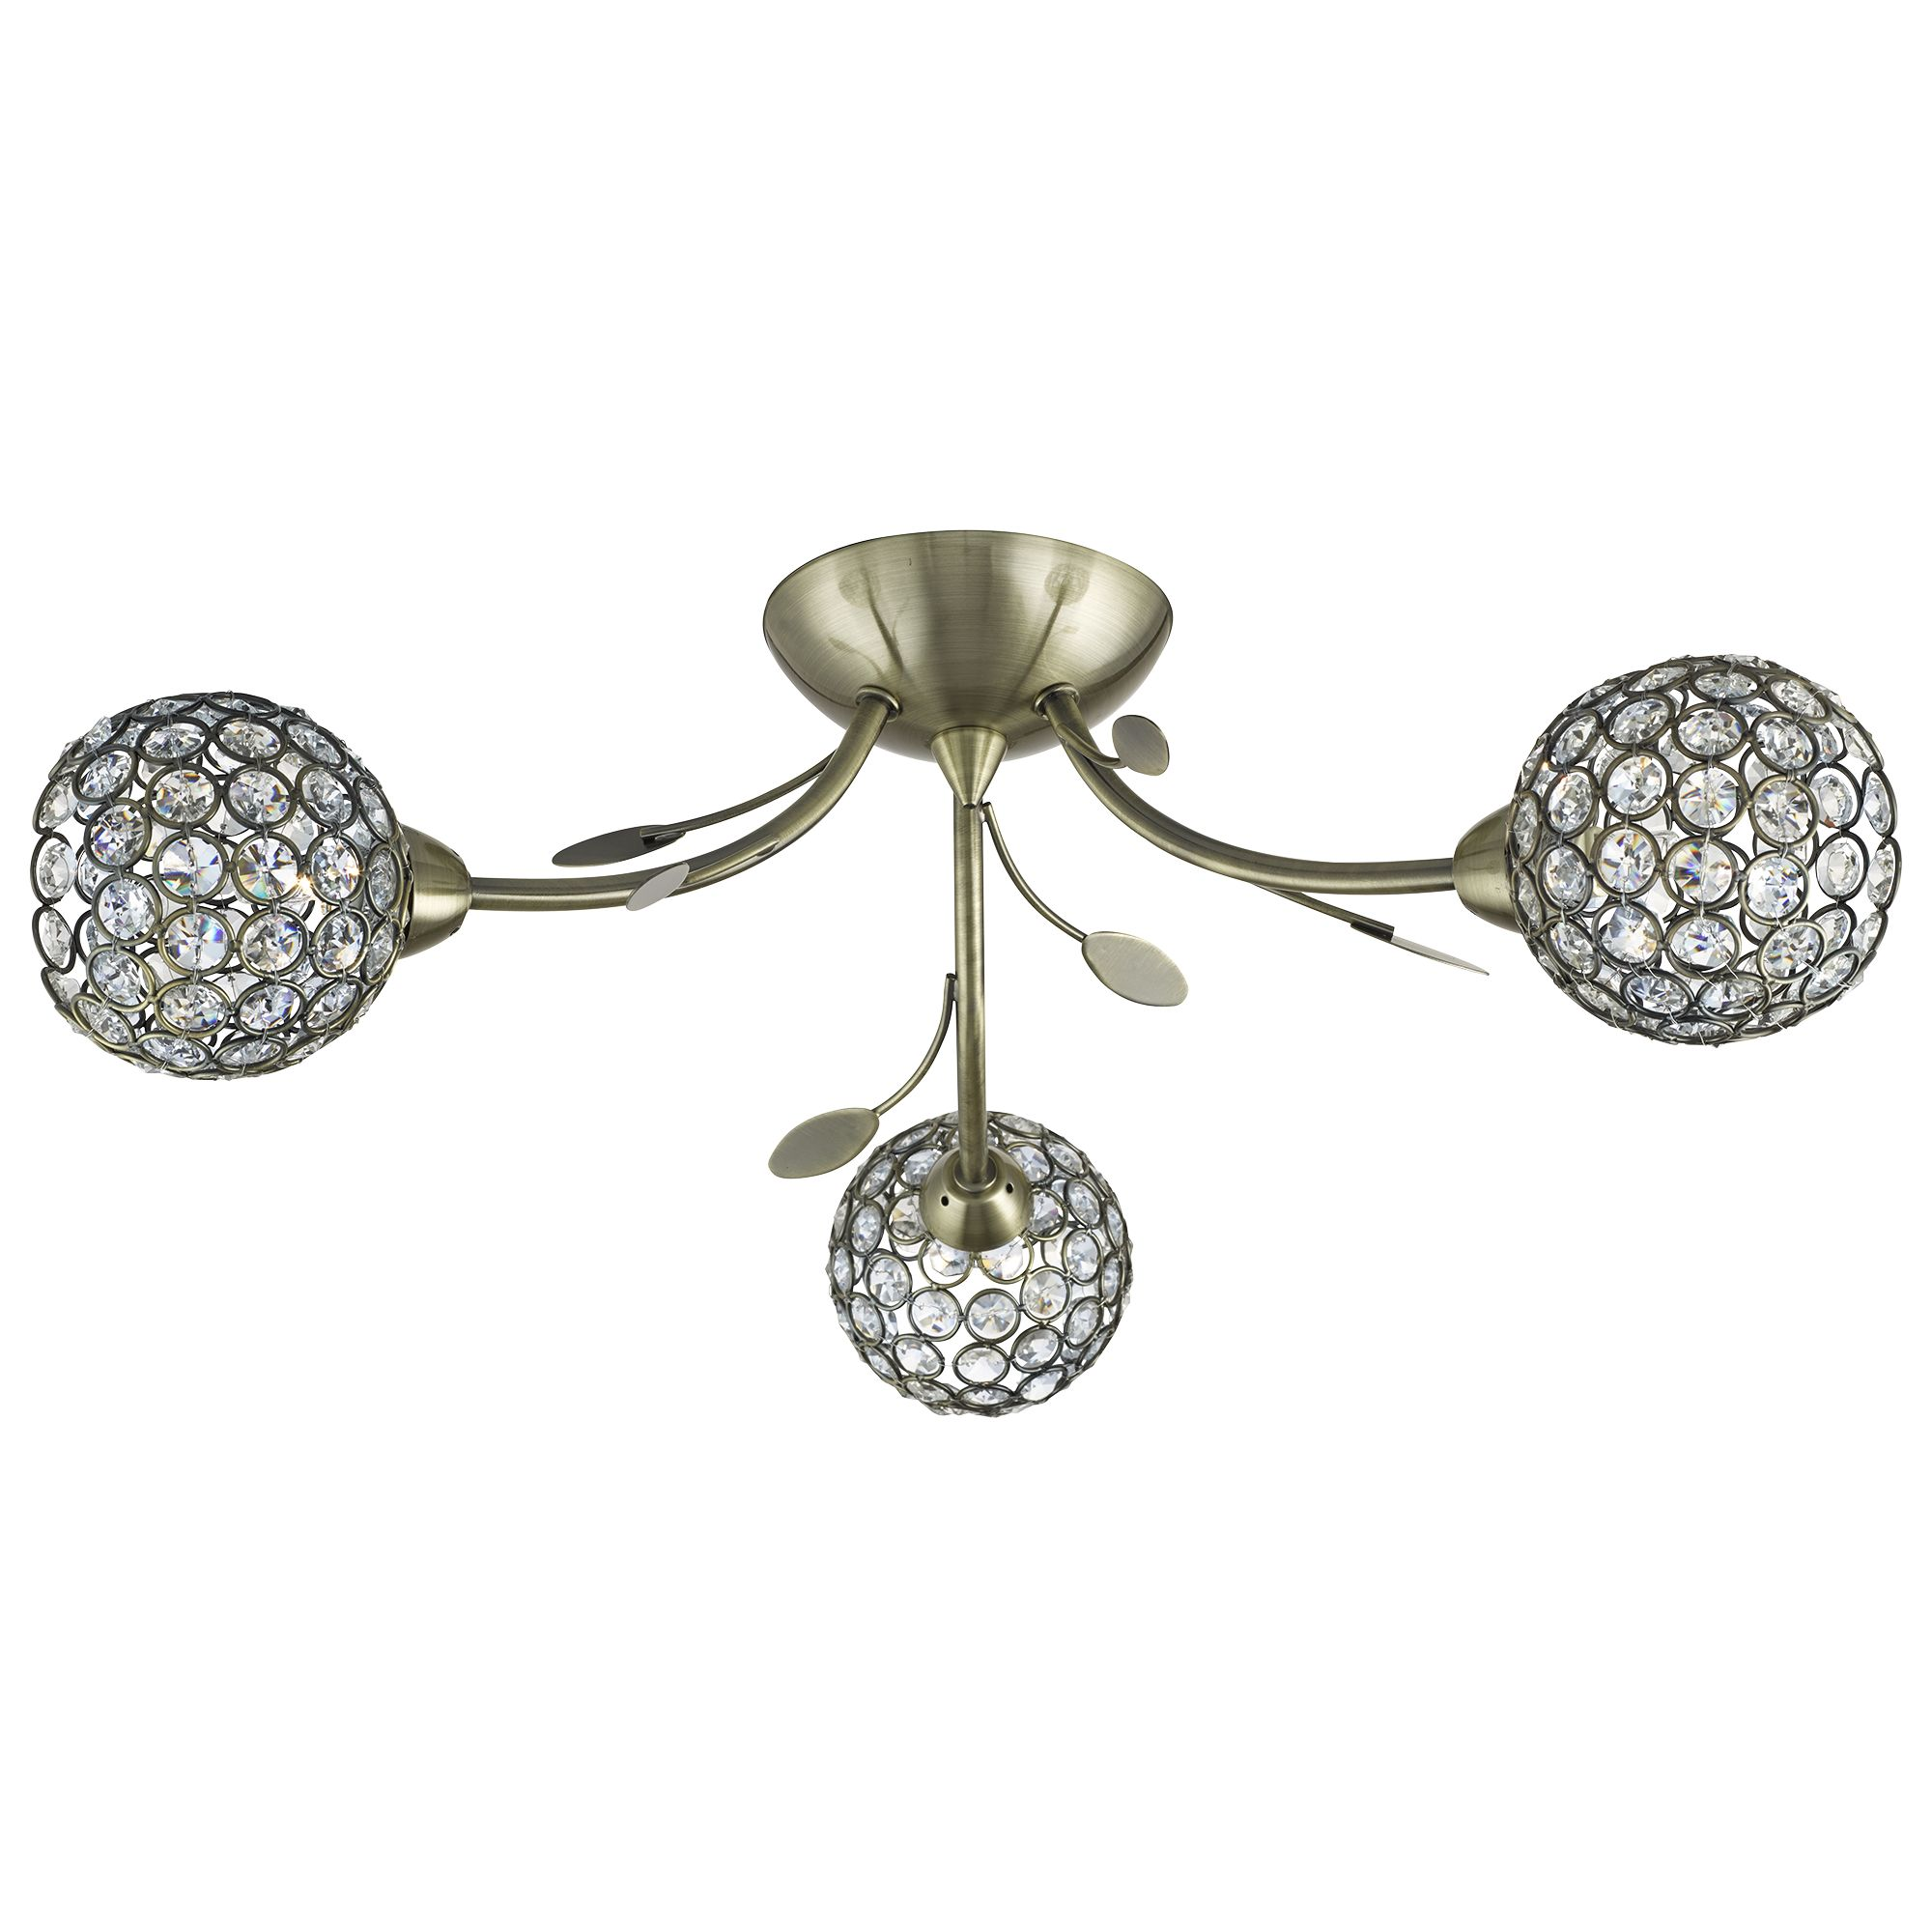 Bellis Ii Antique Brass 3 Light Fitting With Clear Glass Metal Shades